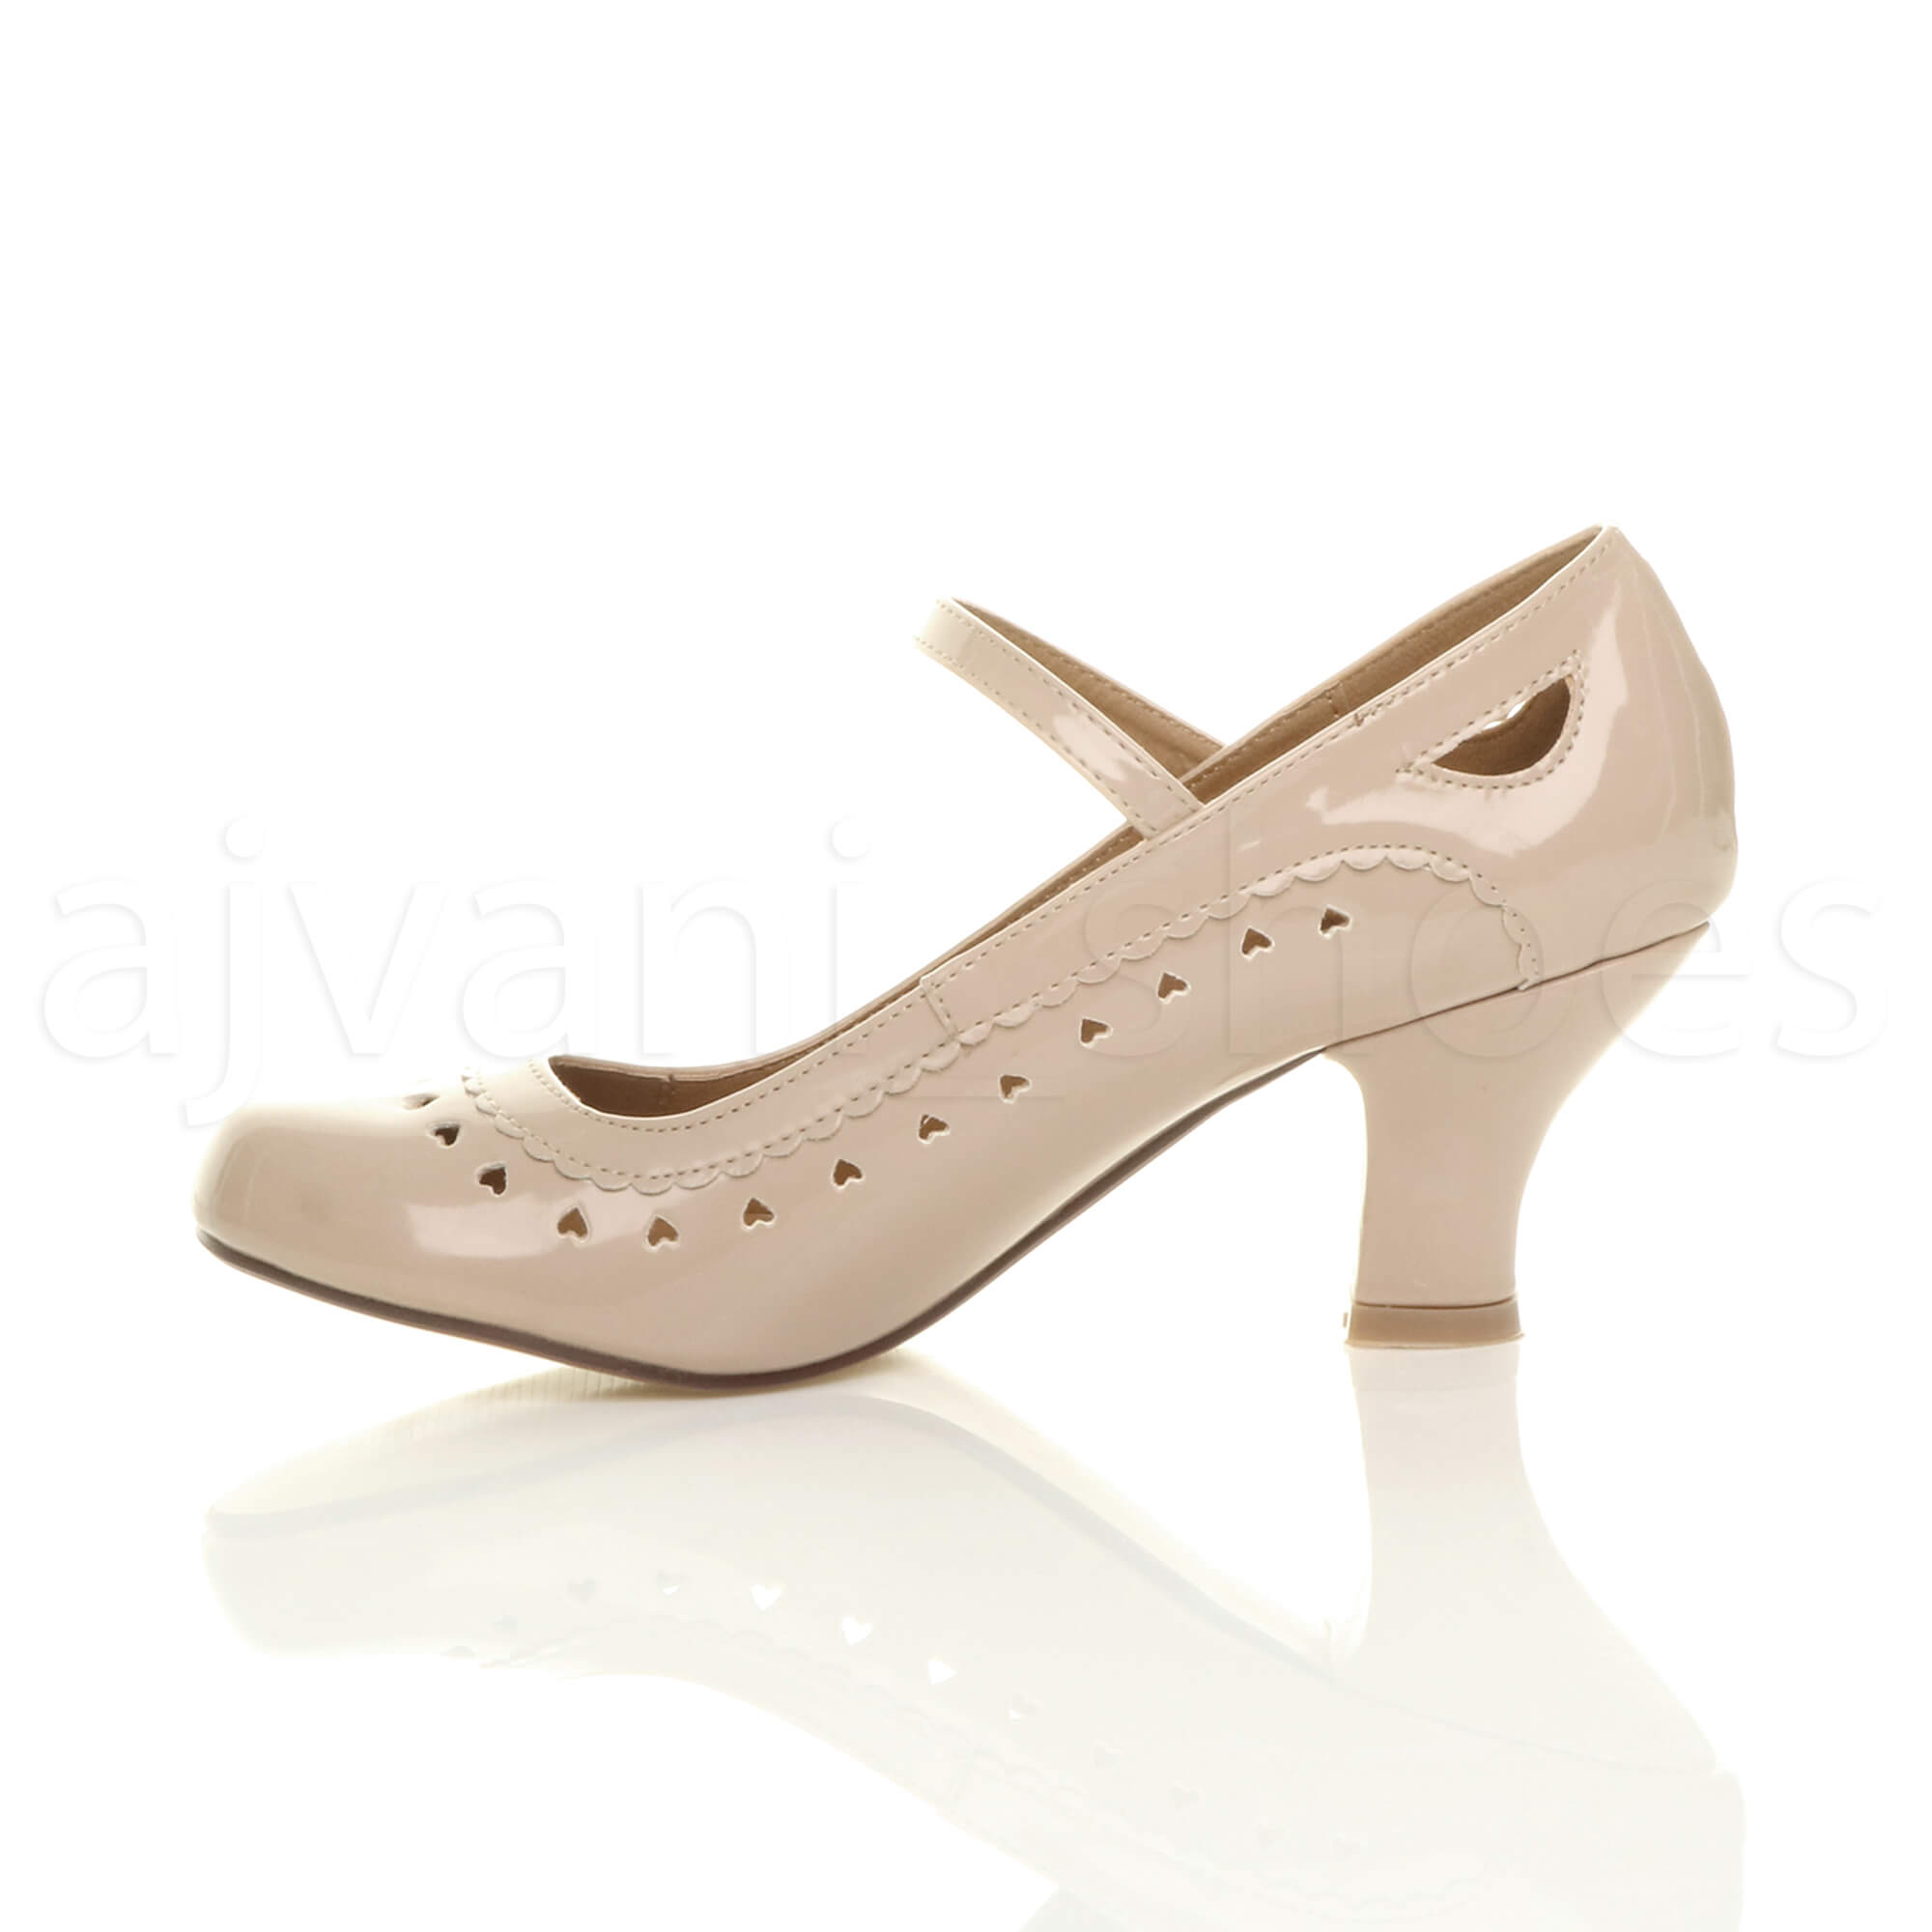 WOMENS-LADIES-LOW-HEEL-ANKLE-STRAP-MARY-JANE-STYLE-WORK-COURT-SHOES-PUMPS-SIZE